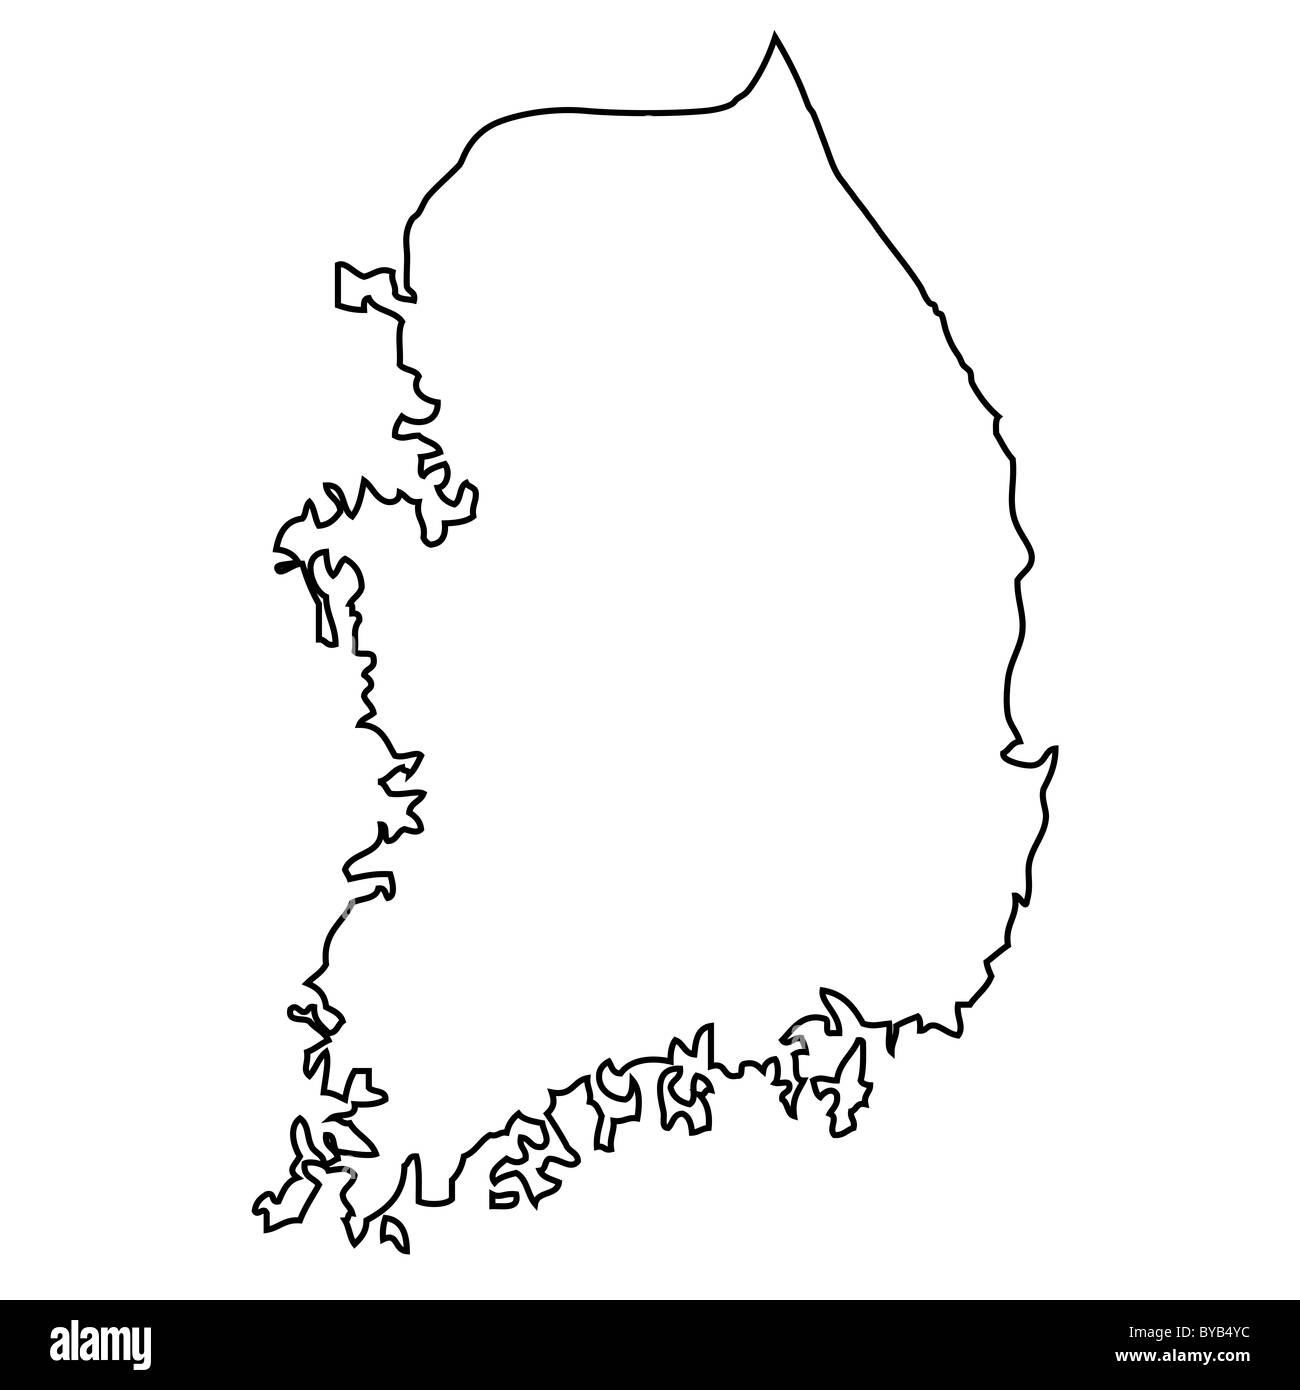 Outline Map Of South Korea Stock Photo Royalty Free Image - south map outline